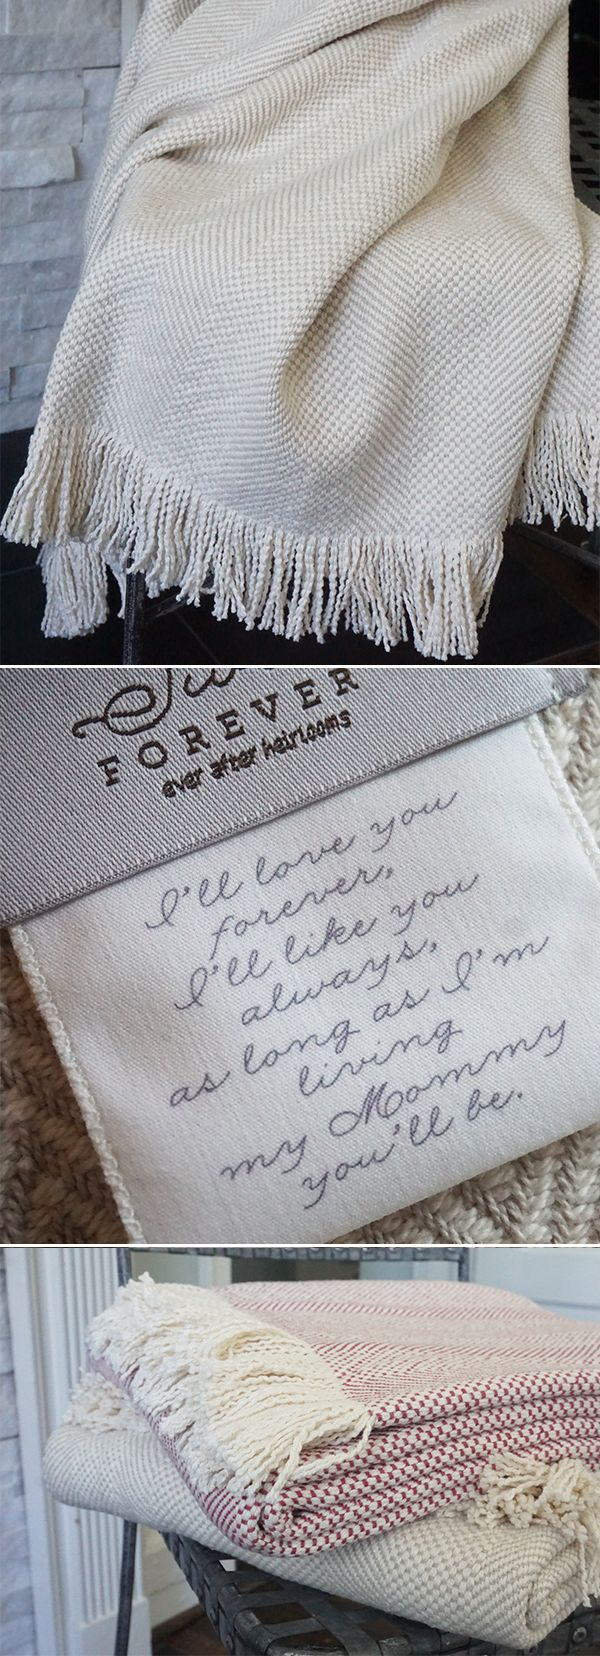 The Olivia Forever Blanket {throw} New from Swell Forever. American Made heirloom blankets for the home. Personalized message tags and monograms available. I'll love your forever. I'll like you always. 100% cotton. Machine washable. Beautiful gifts that give back. For mom, girlfriend, grandmother, sister, best friend, couples, weddings, anniversaries, mother of the bride, mother of the groom, etc. Unique gift ideas with heart.